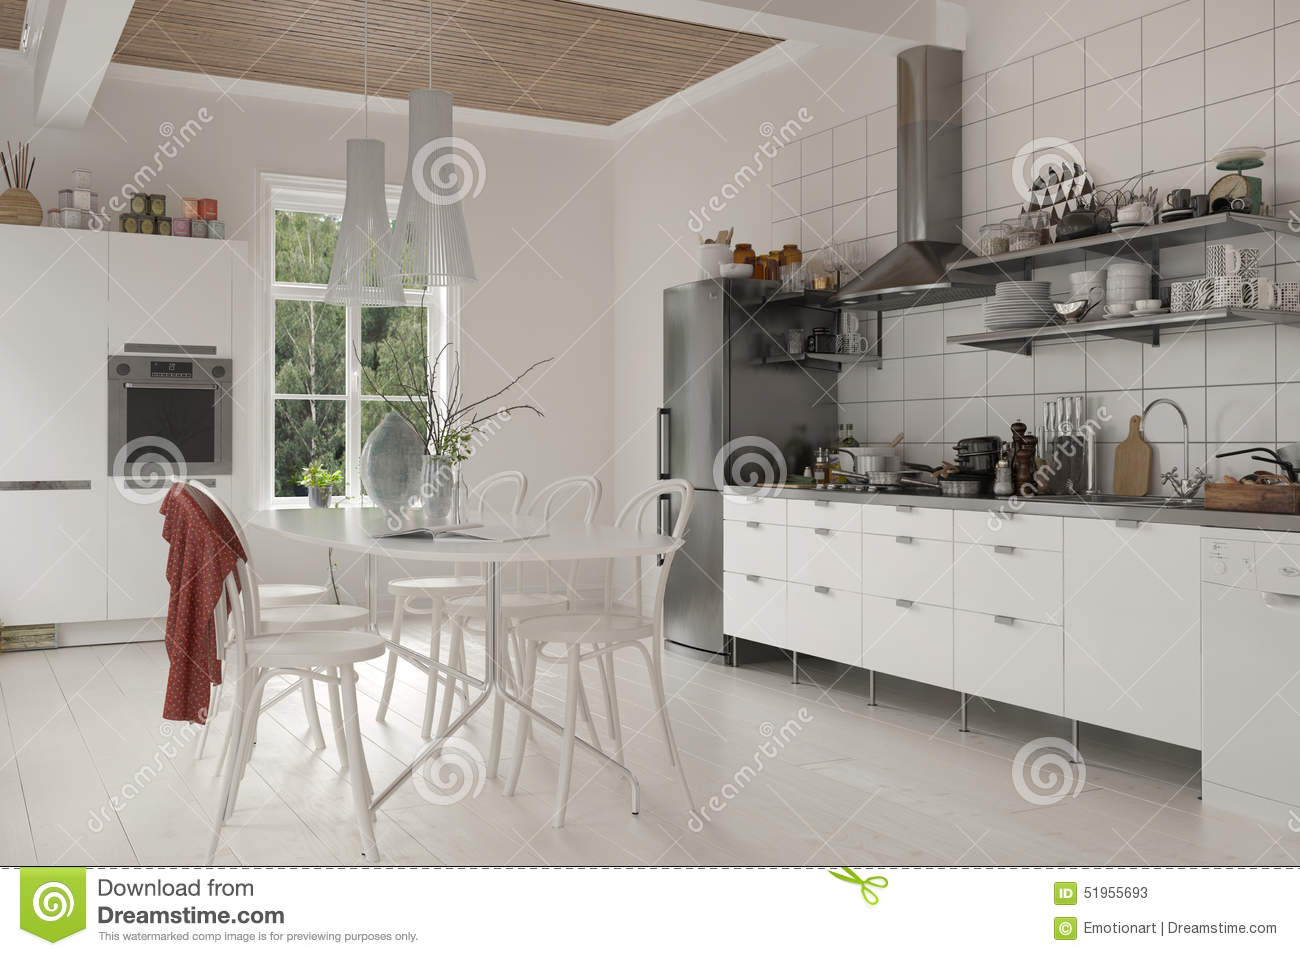 Large rustic kitchen with table and chairs